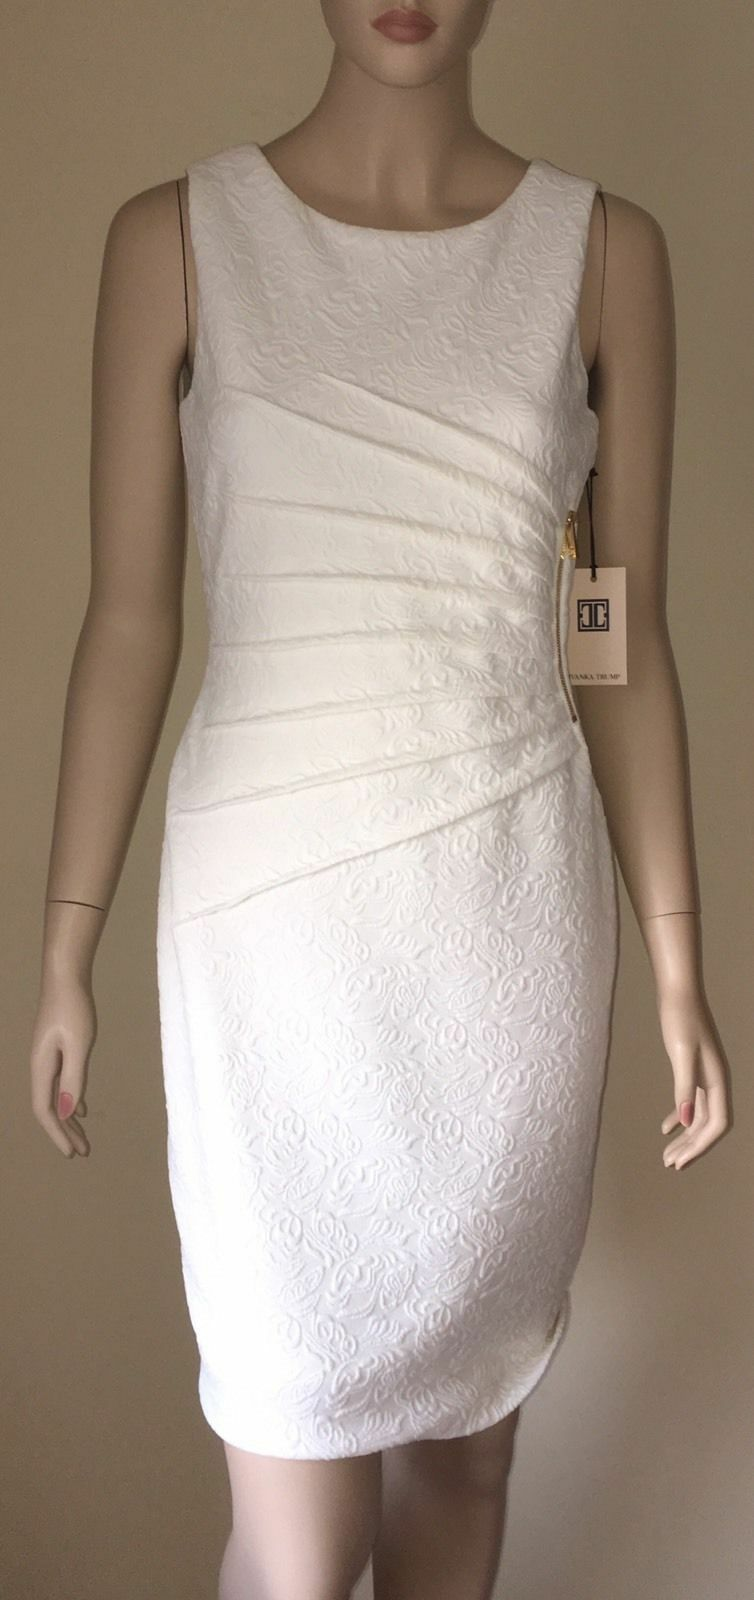 IVANKA TRUMP Textured Sunburst Sheath Dress Size 10 Ivory NWT